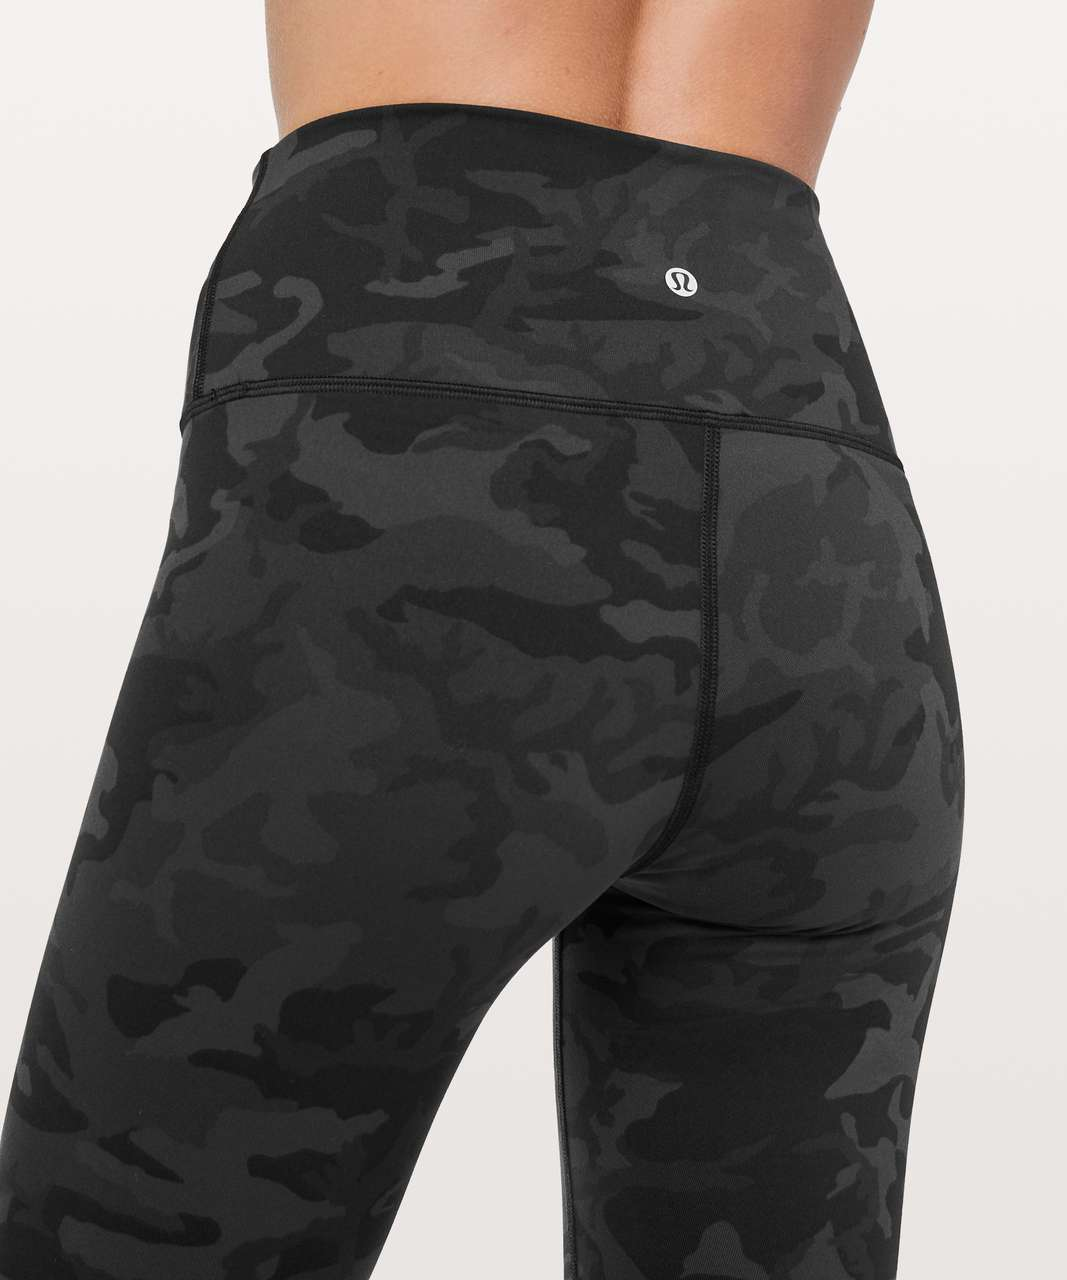 "Lululemon Wunder Under Hi-Rise Tight *28"" - Incognito Camo Multi Grey"